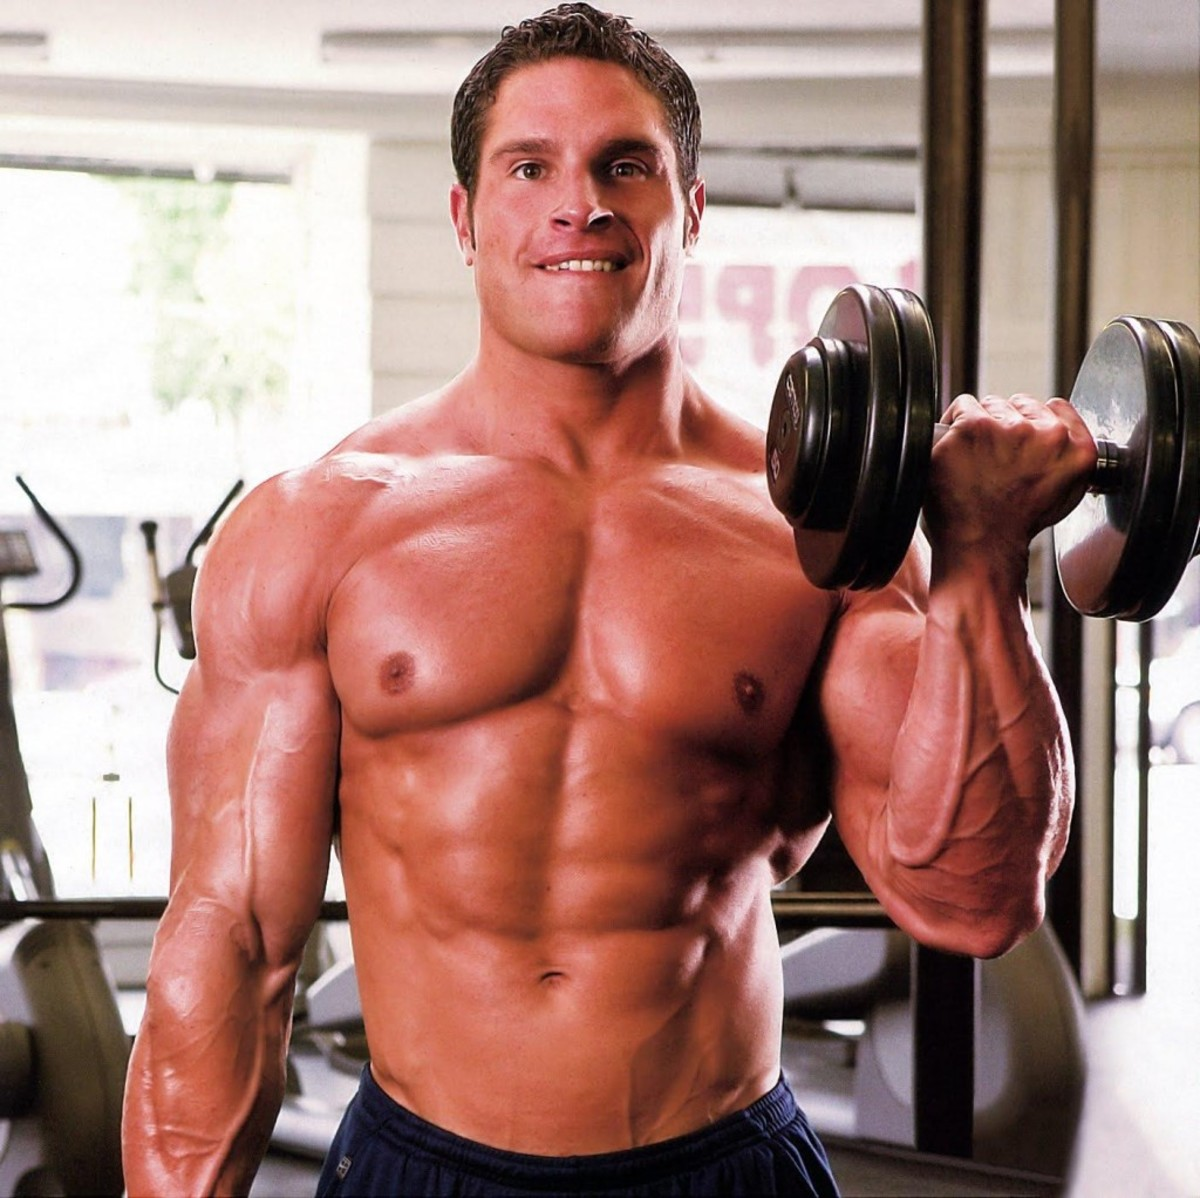 50 Muscle Building and Weight Loss tips (Part 1)